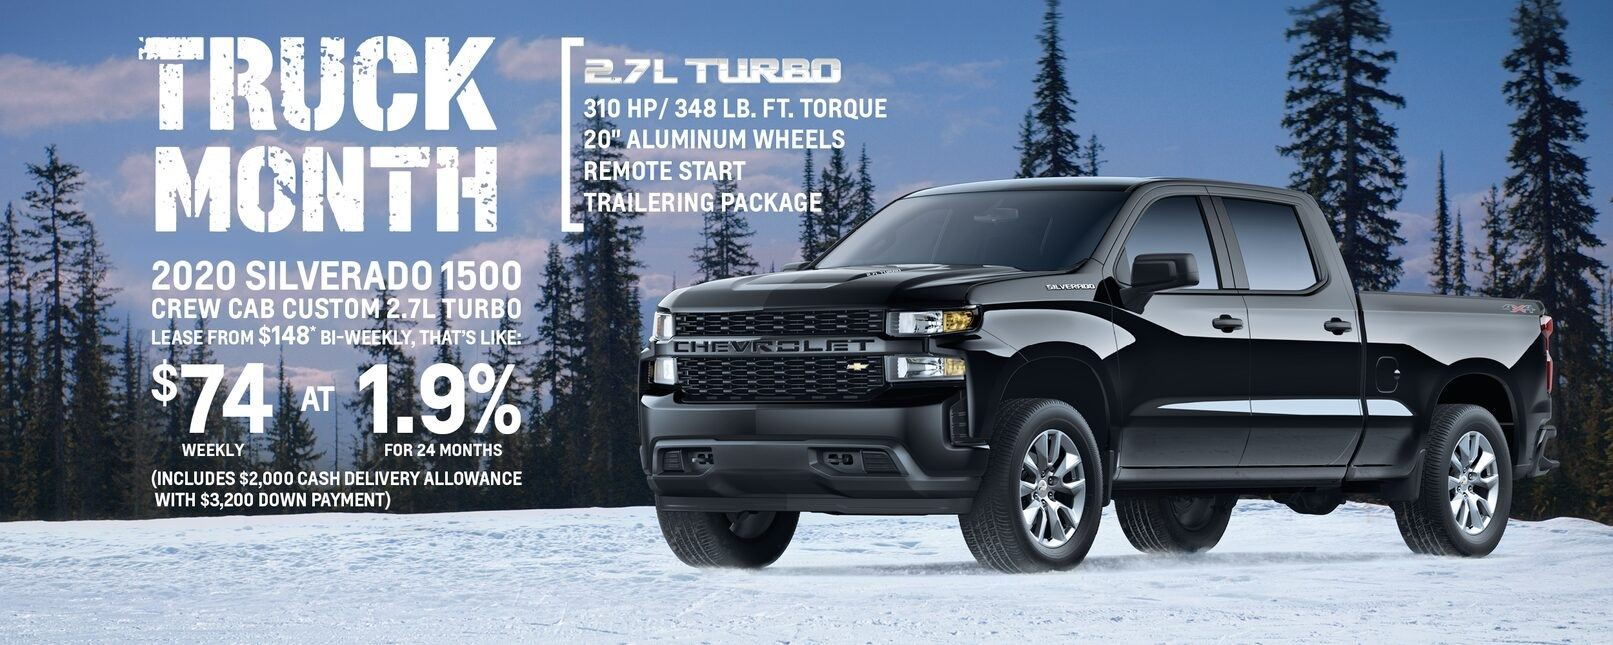 Chevy January Specials